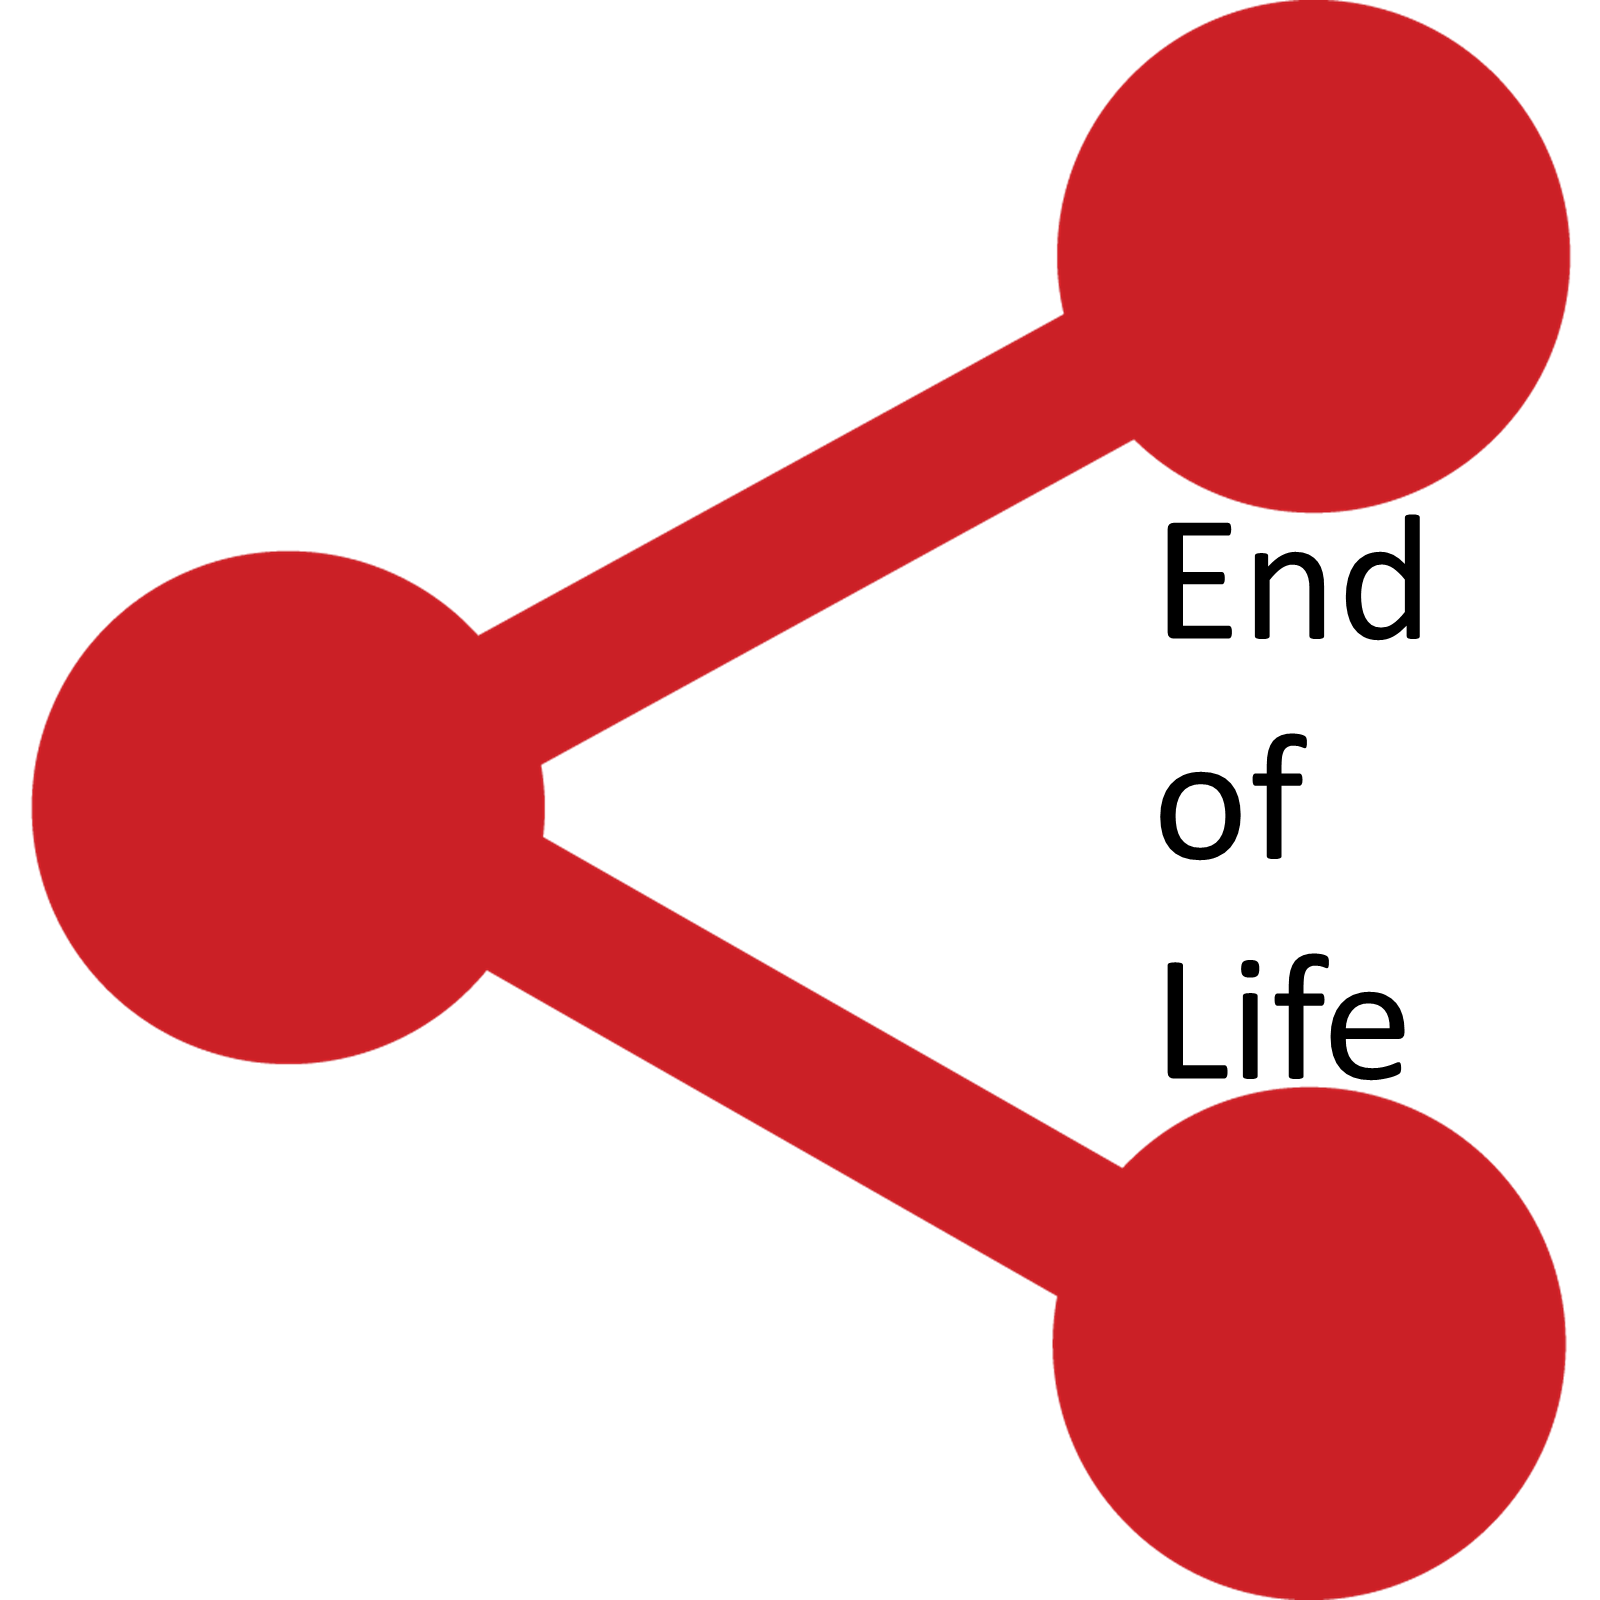 End of Life share icon